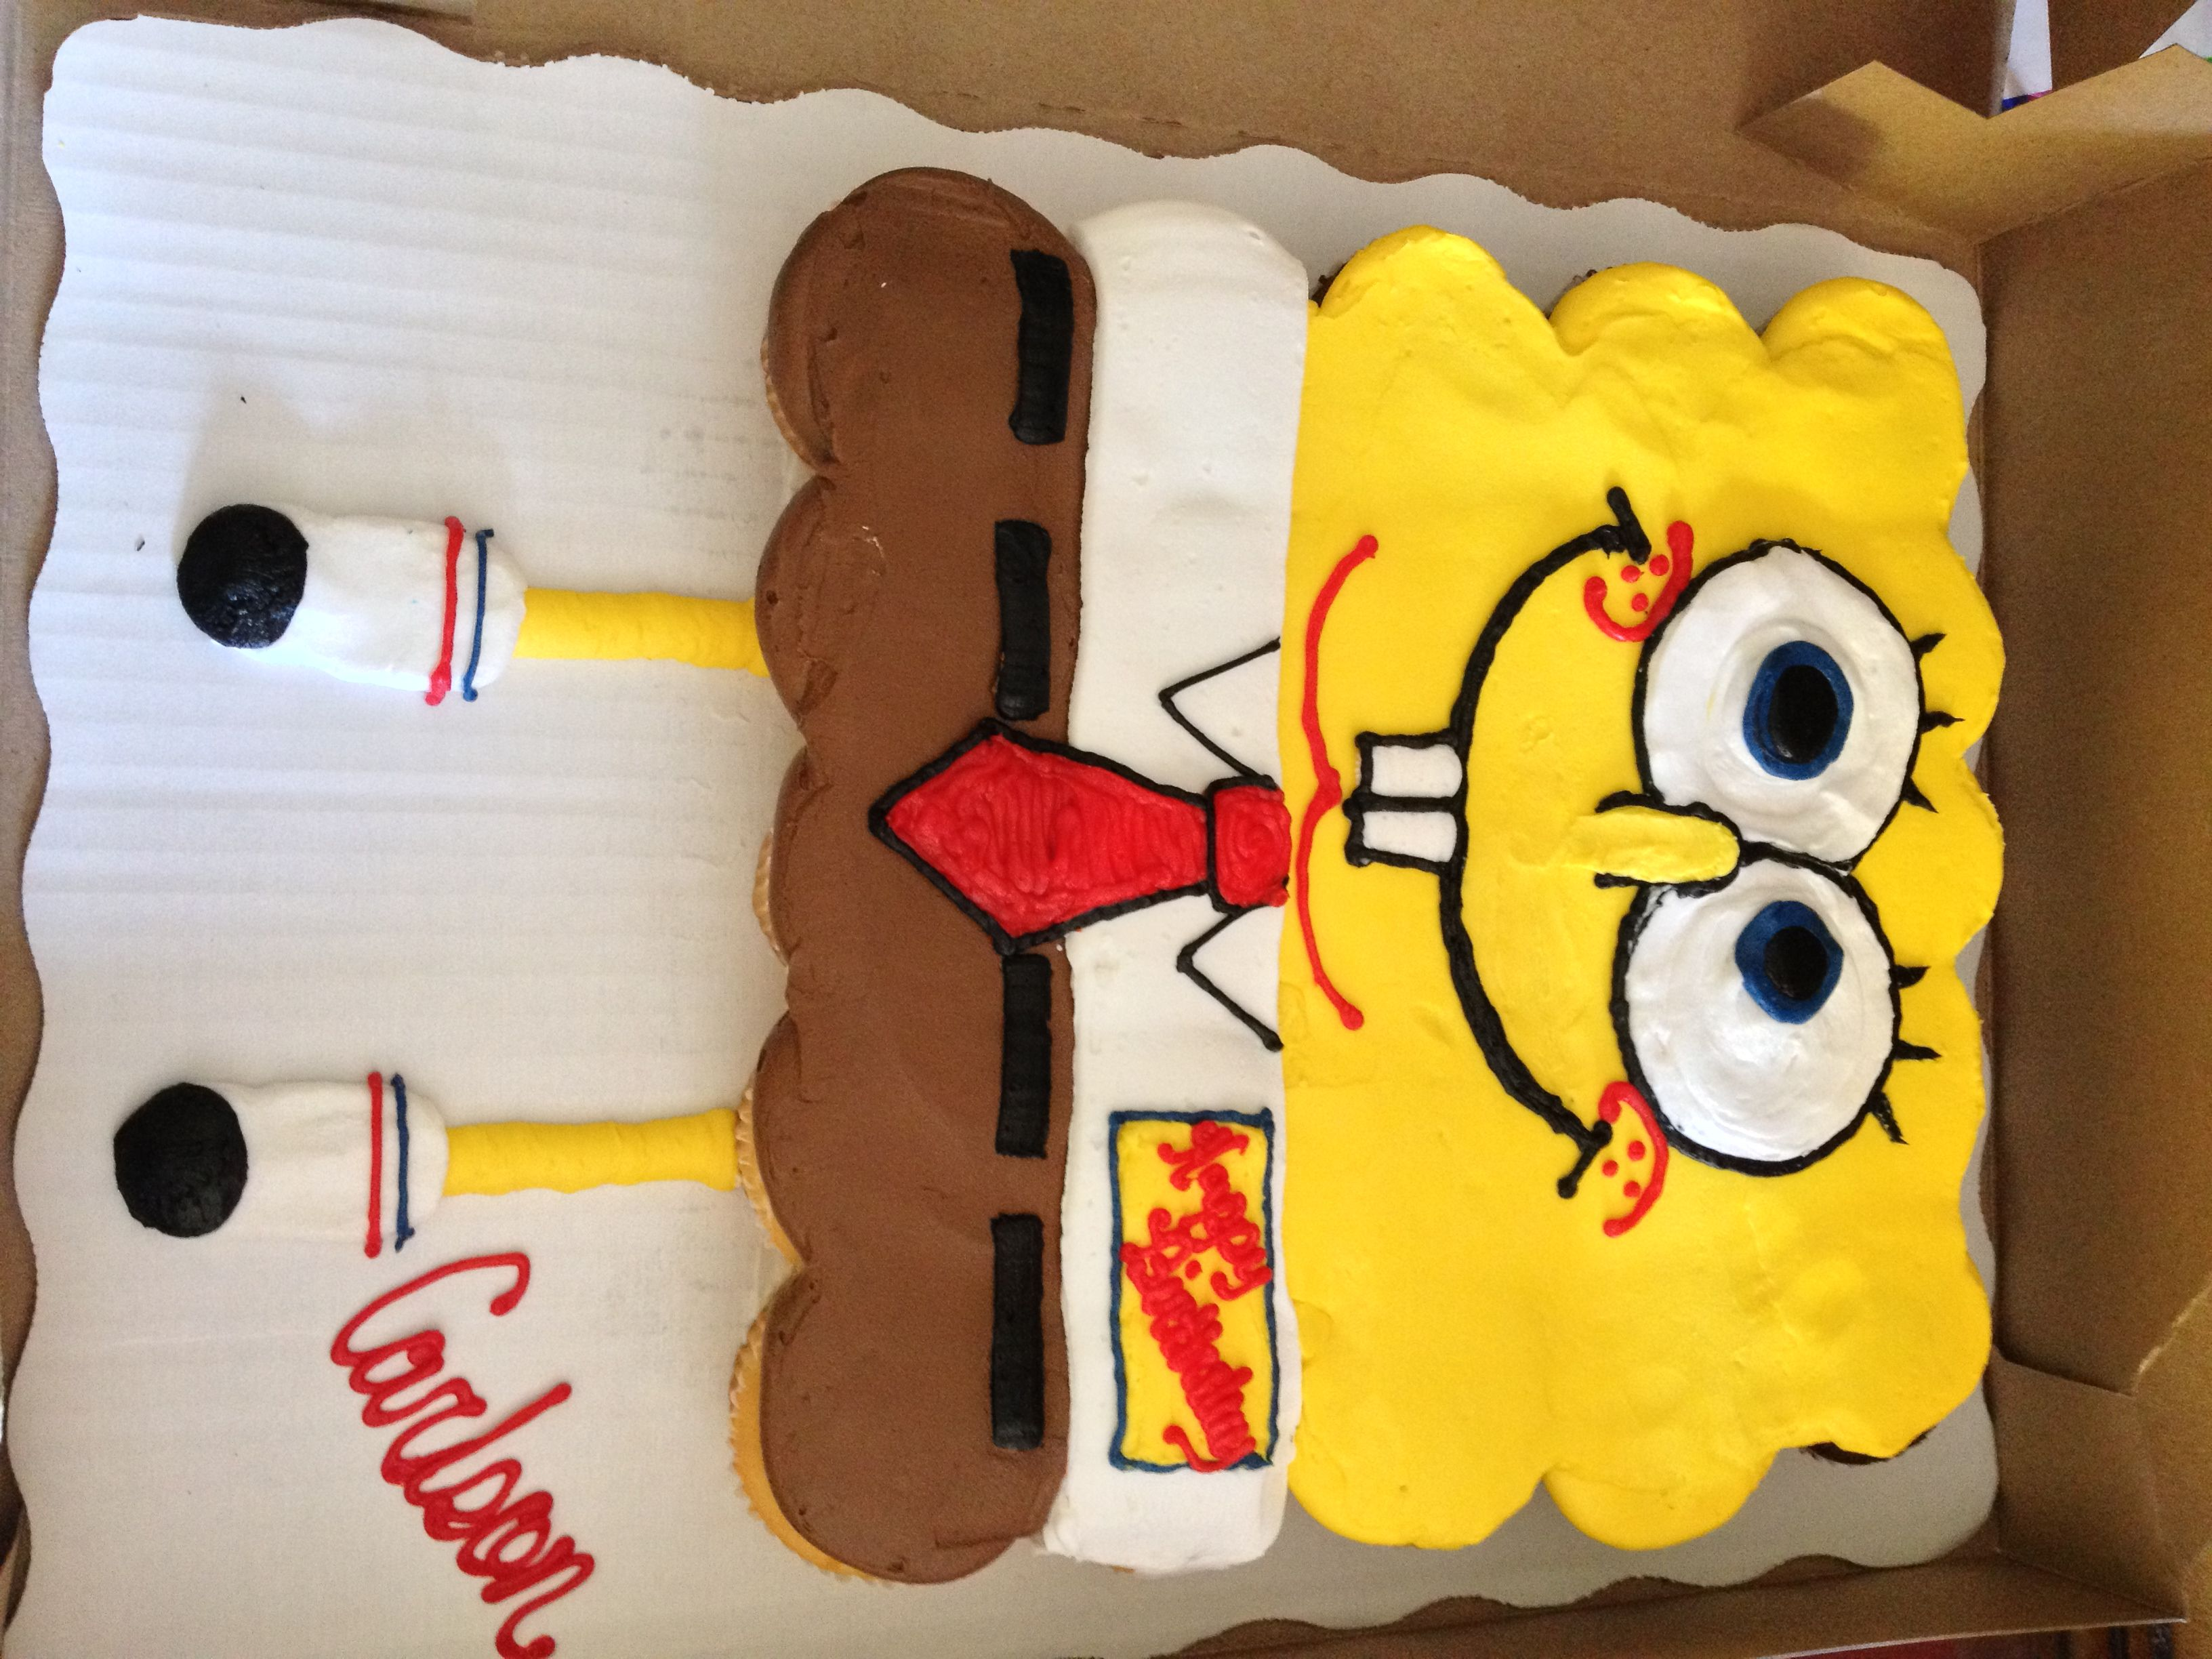 Spongebob Cupcake Cake From Walmart Only Pay For The Cost Of 2 Dozen Cupcakes 1498